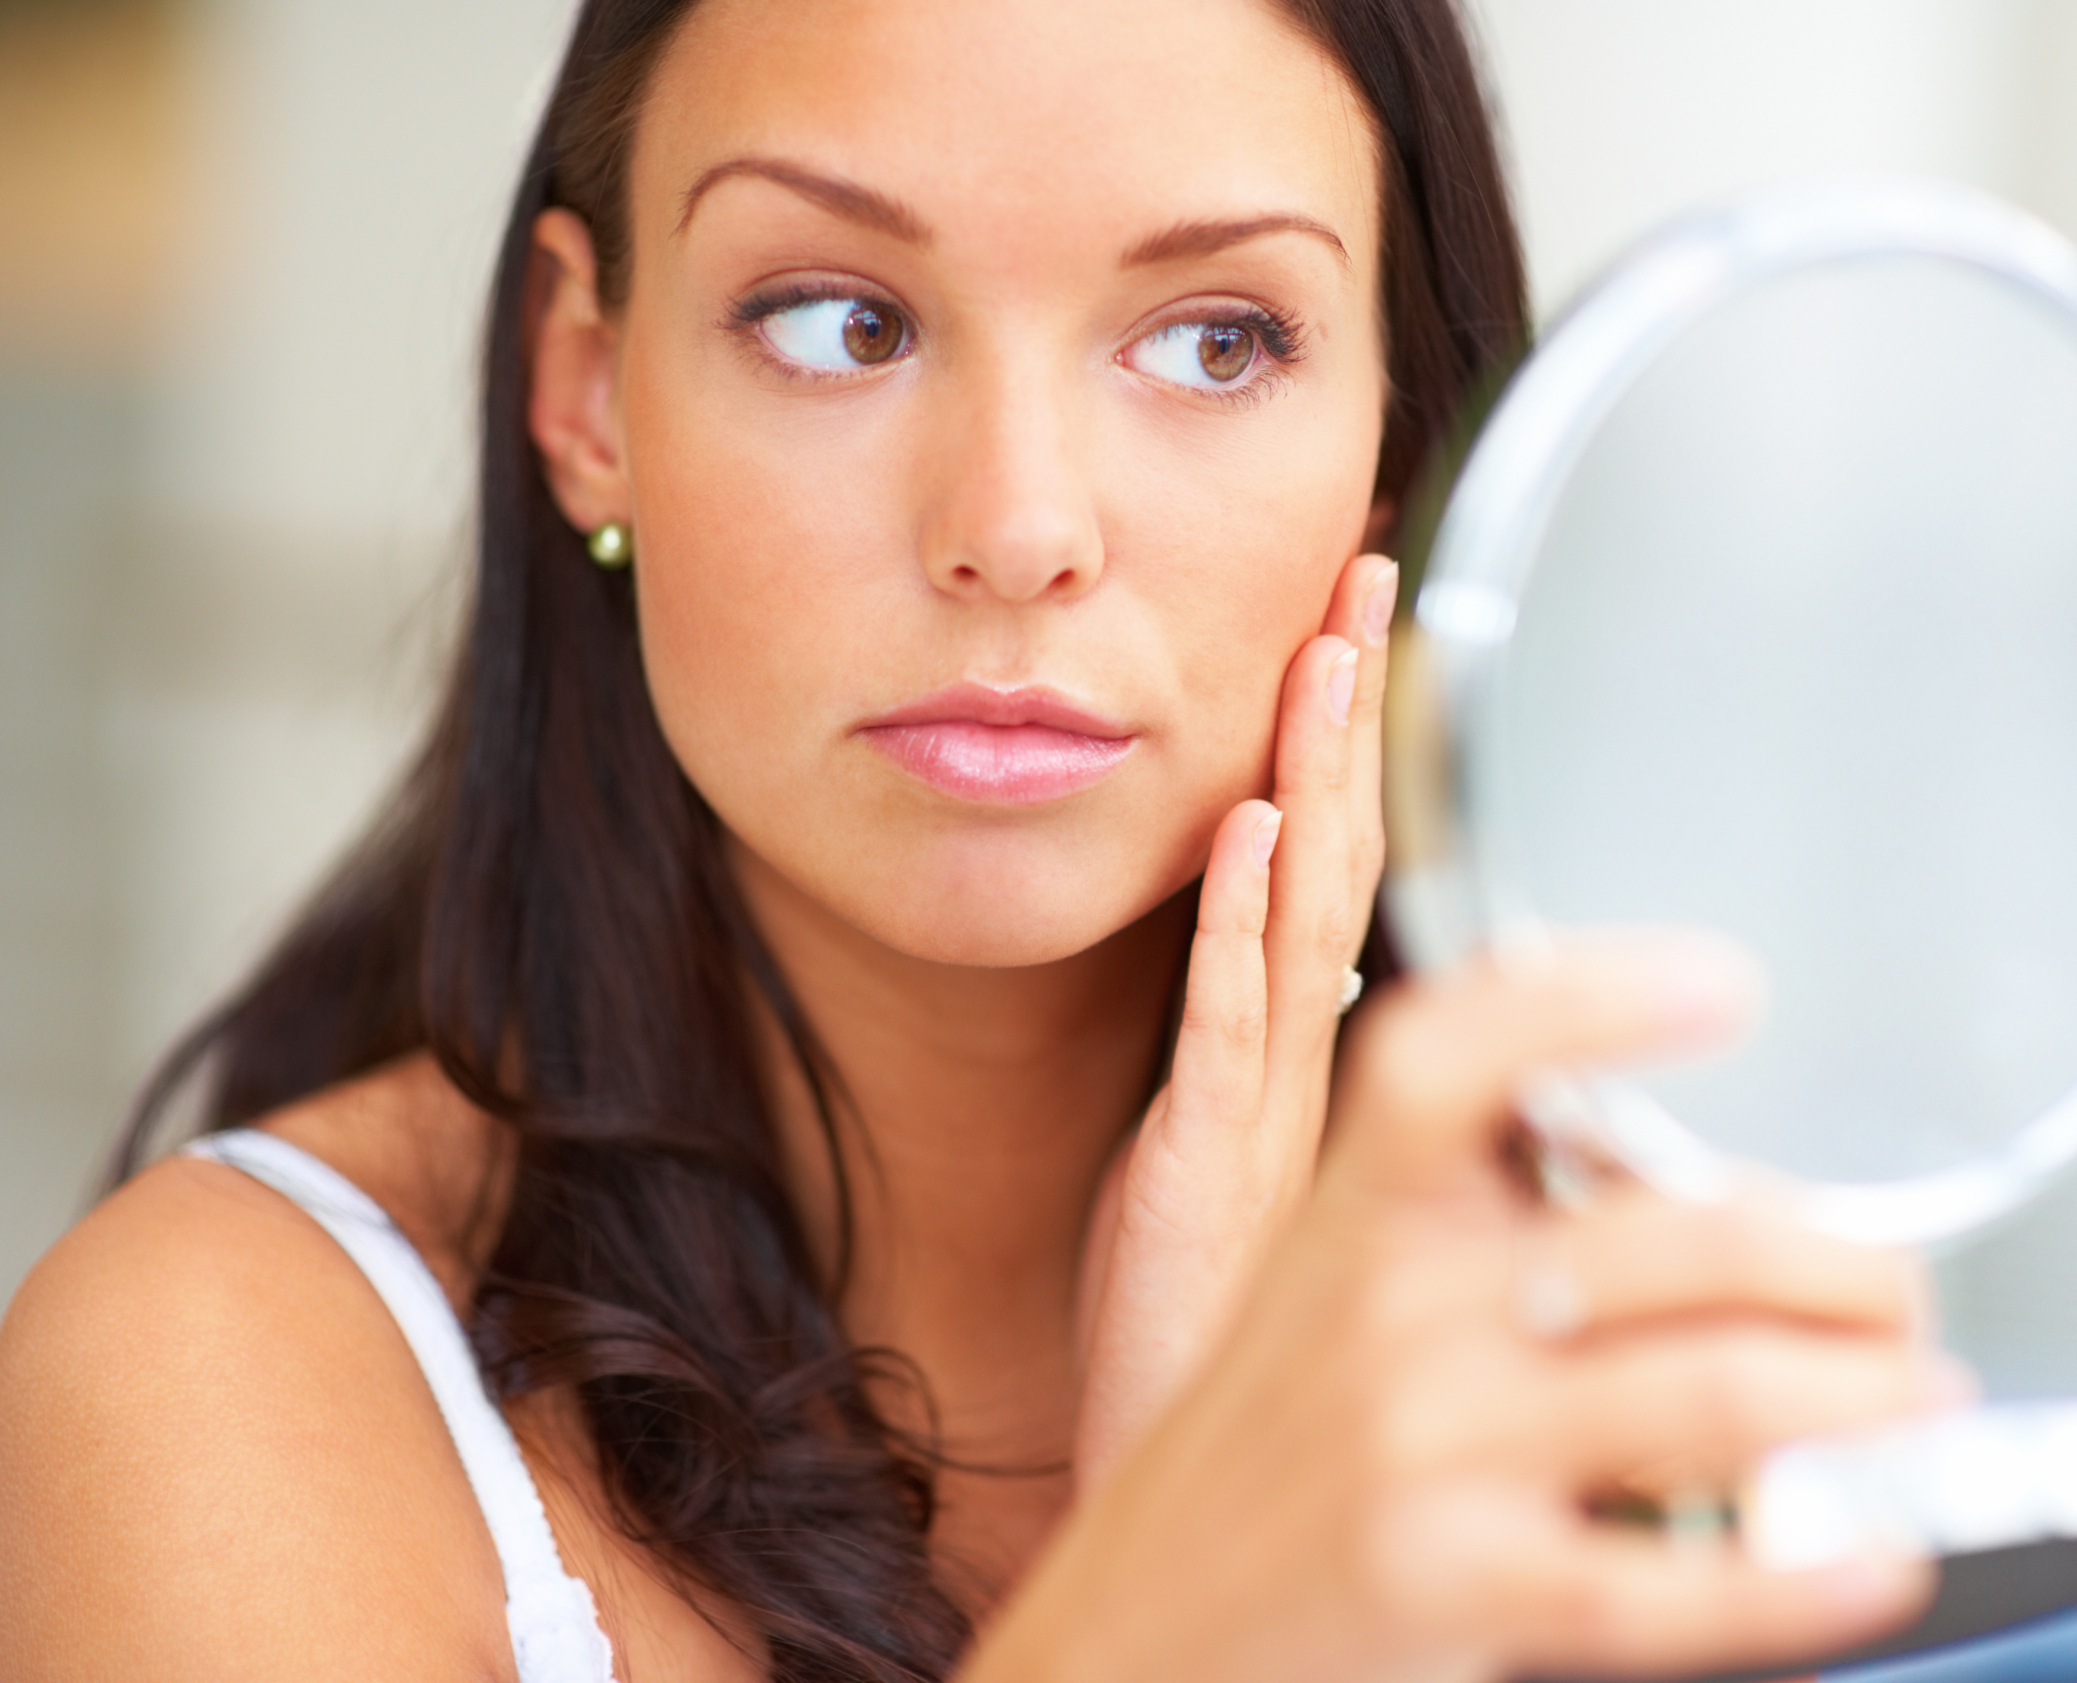 Woman-looking-at-her-face-in-mirror